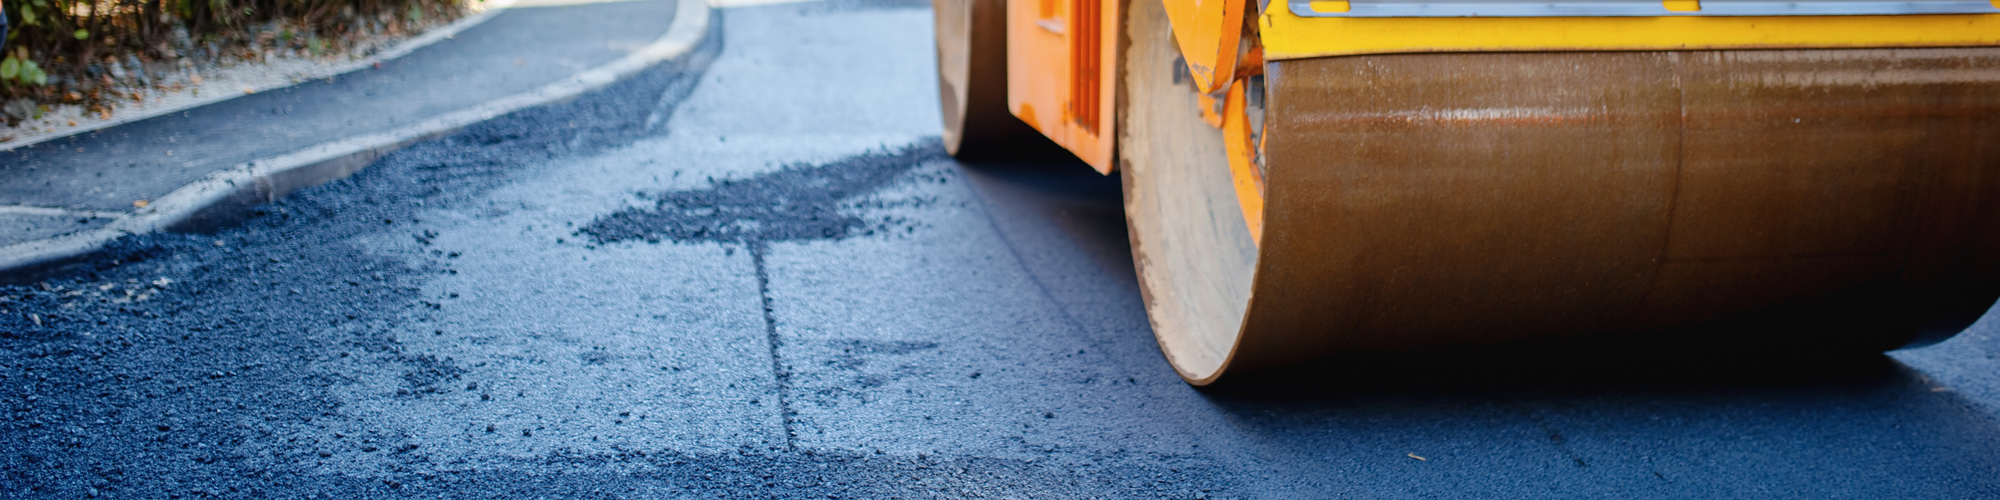 Professional driveway resurfacing in Chicago, IL.